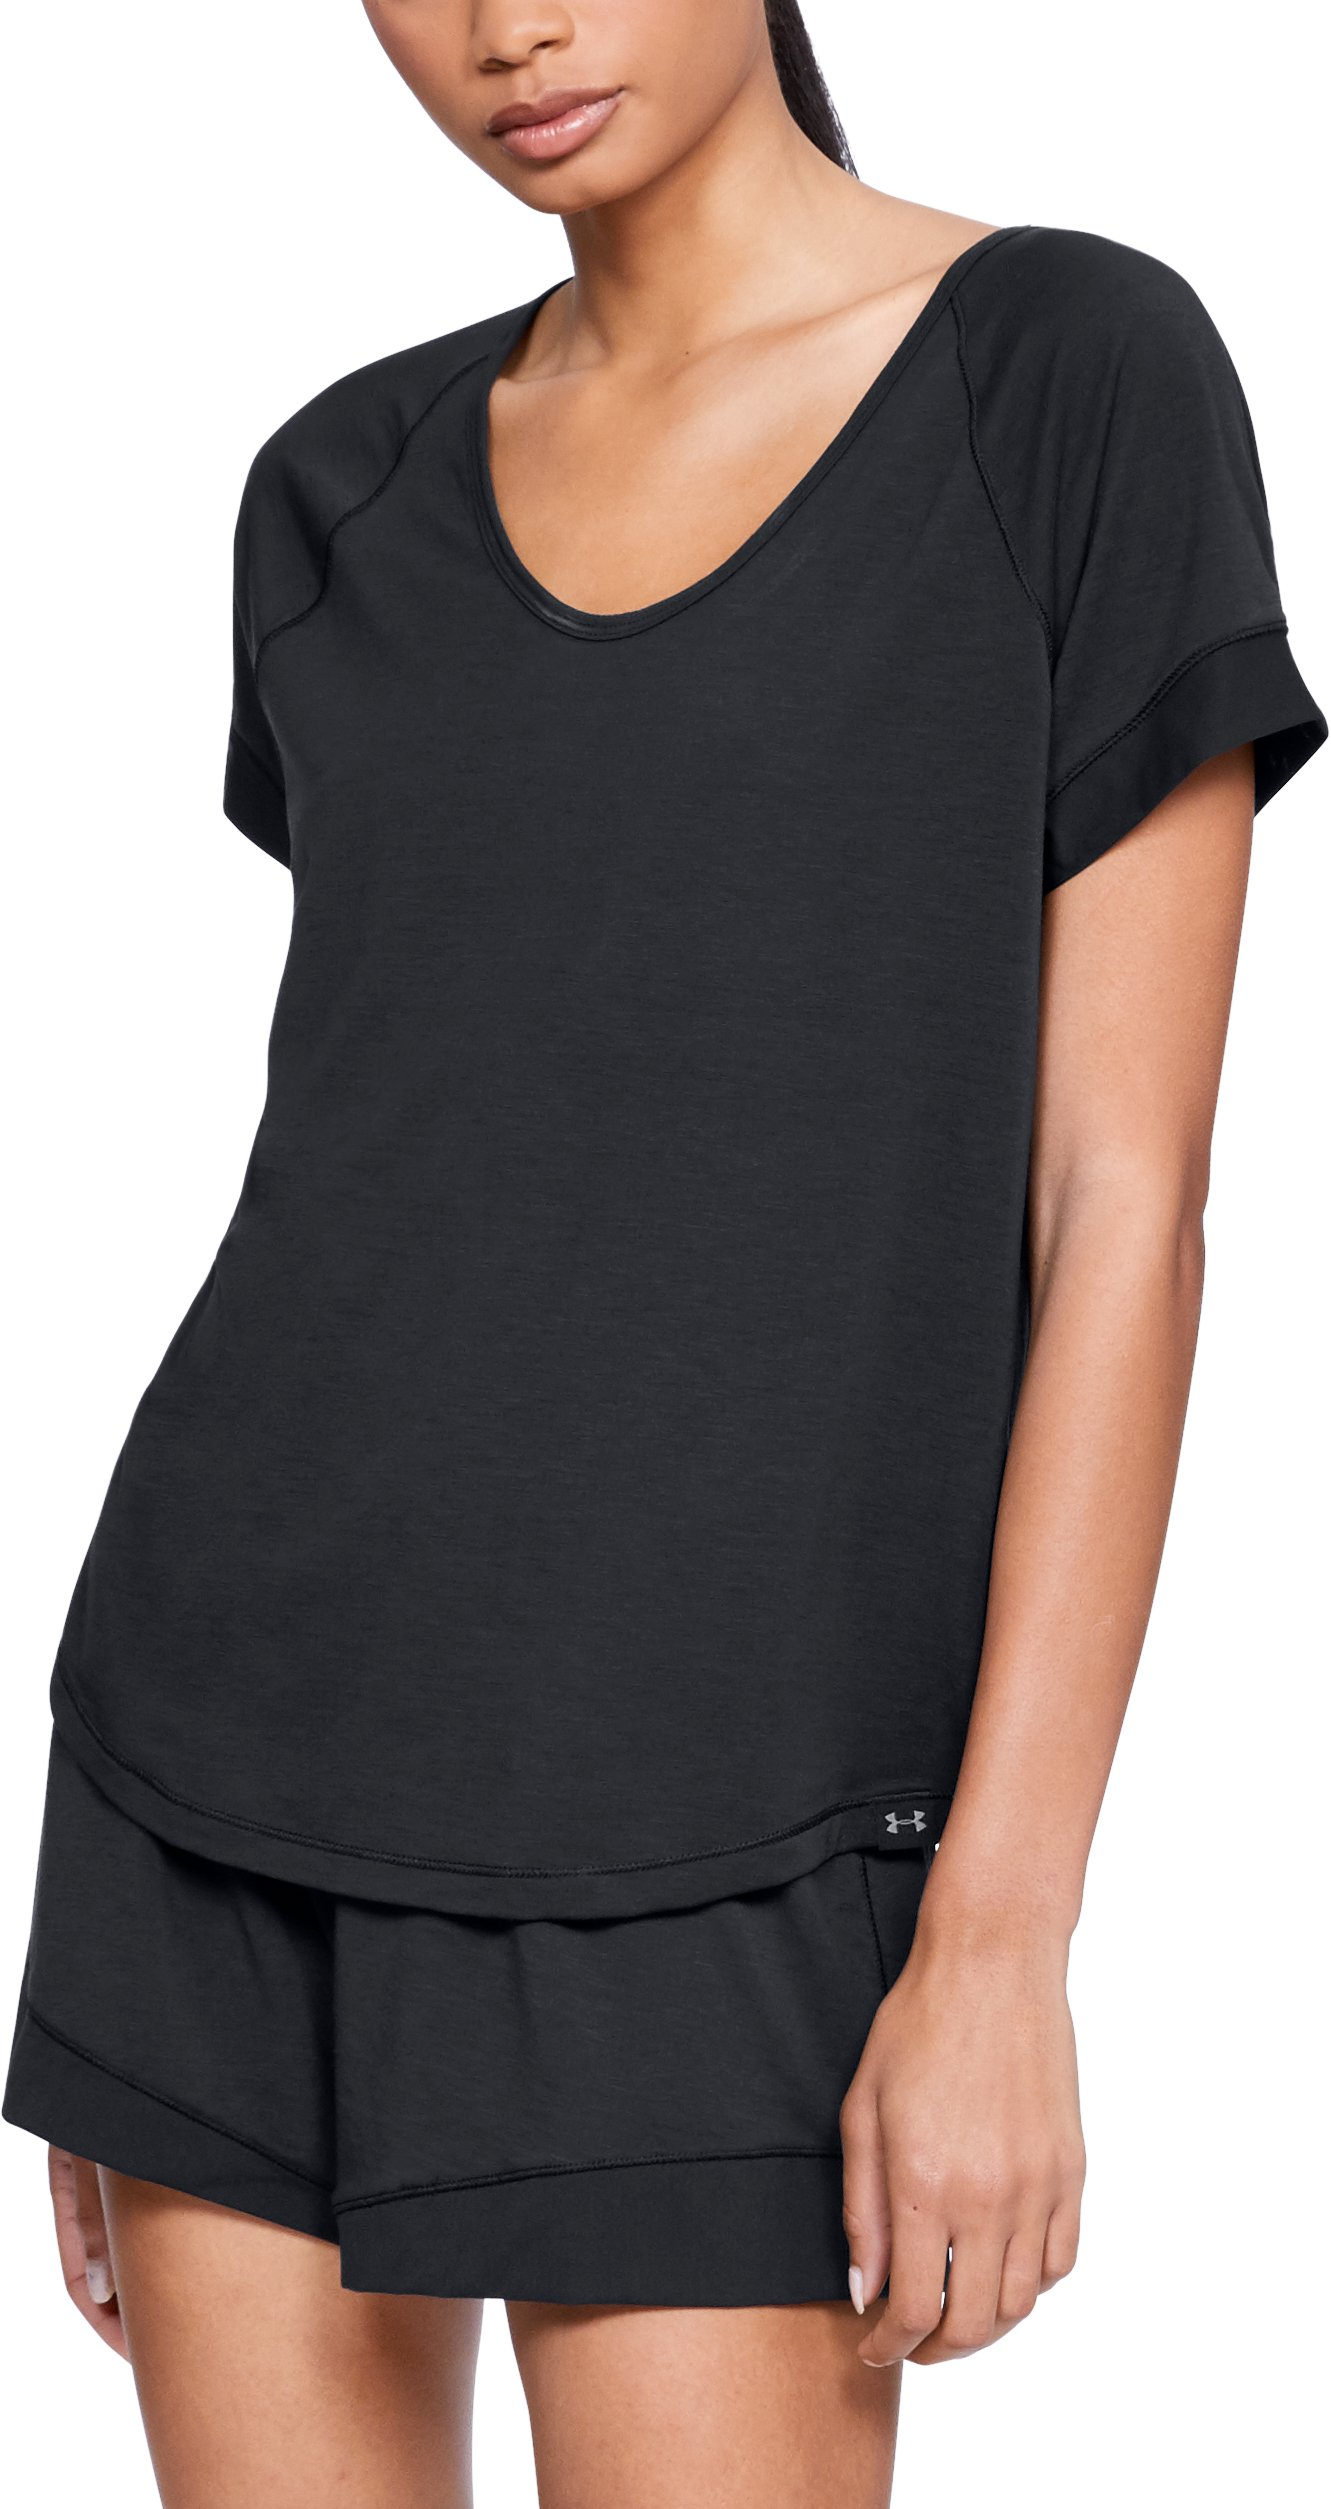 Women's Athlete Recovery Sleepwear Short Sleeve, Black ,